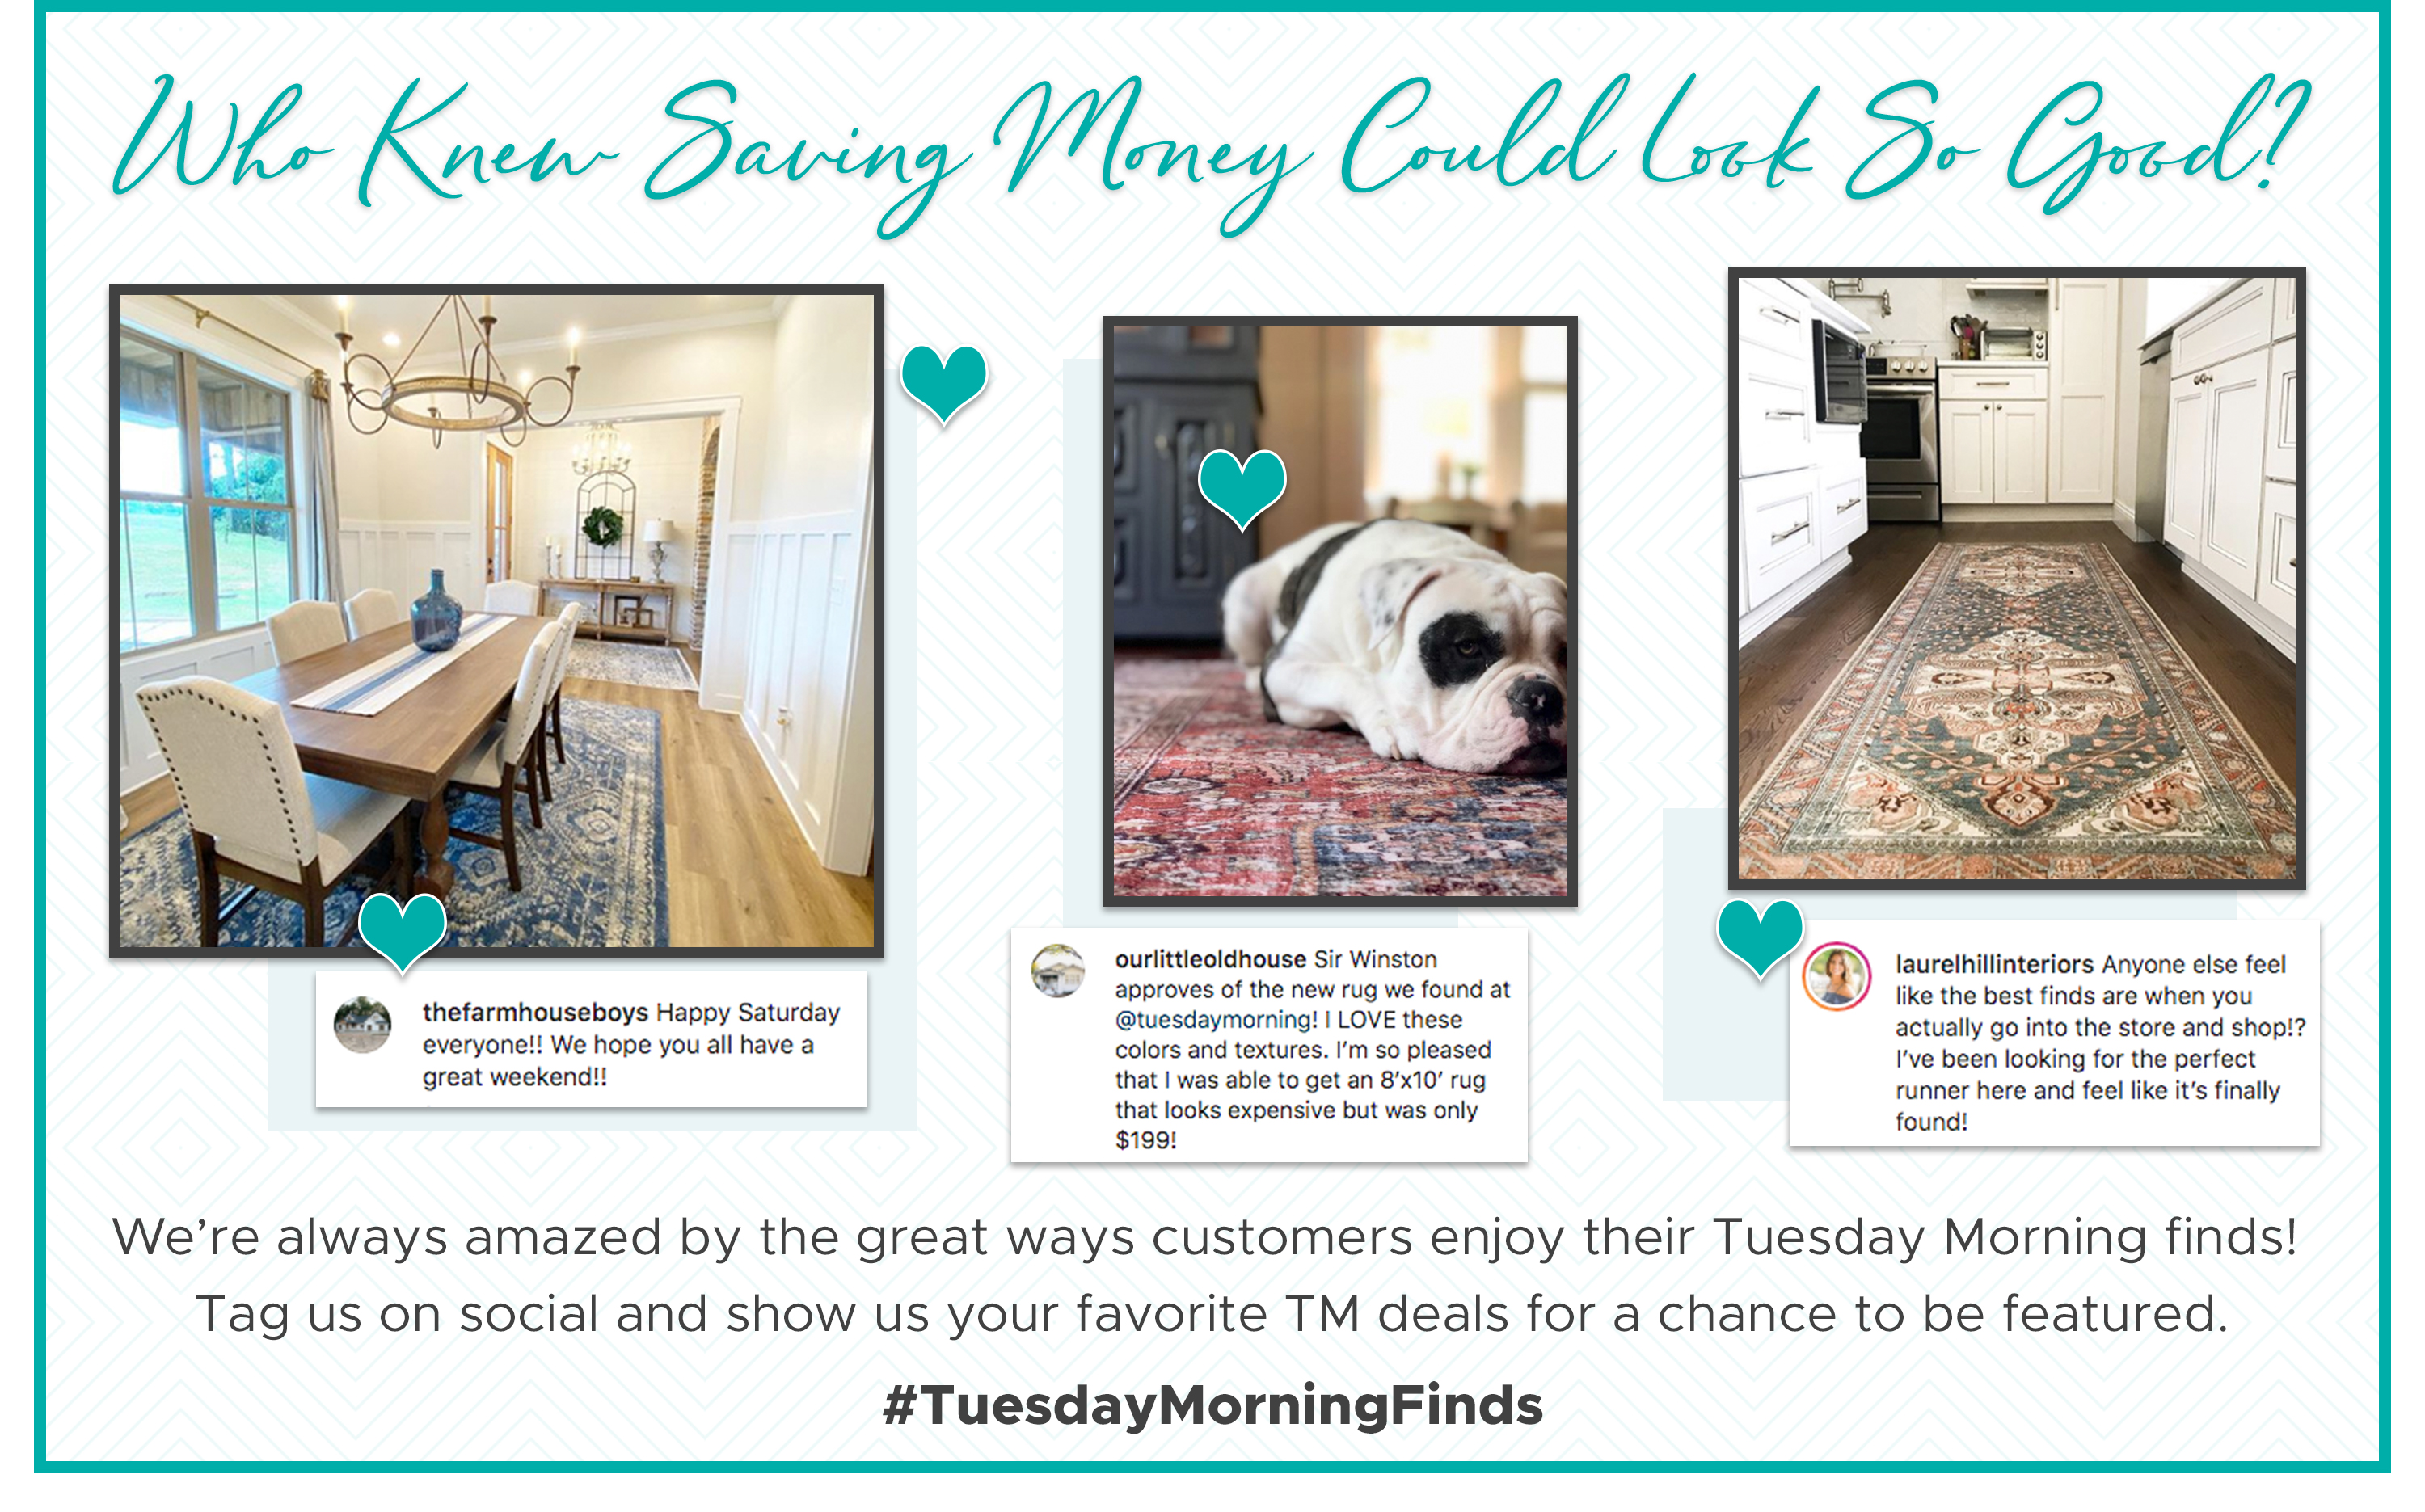 Tag us on social and show us your favorite TM deals for a chance to be featured. #TuesdayMorningFinds